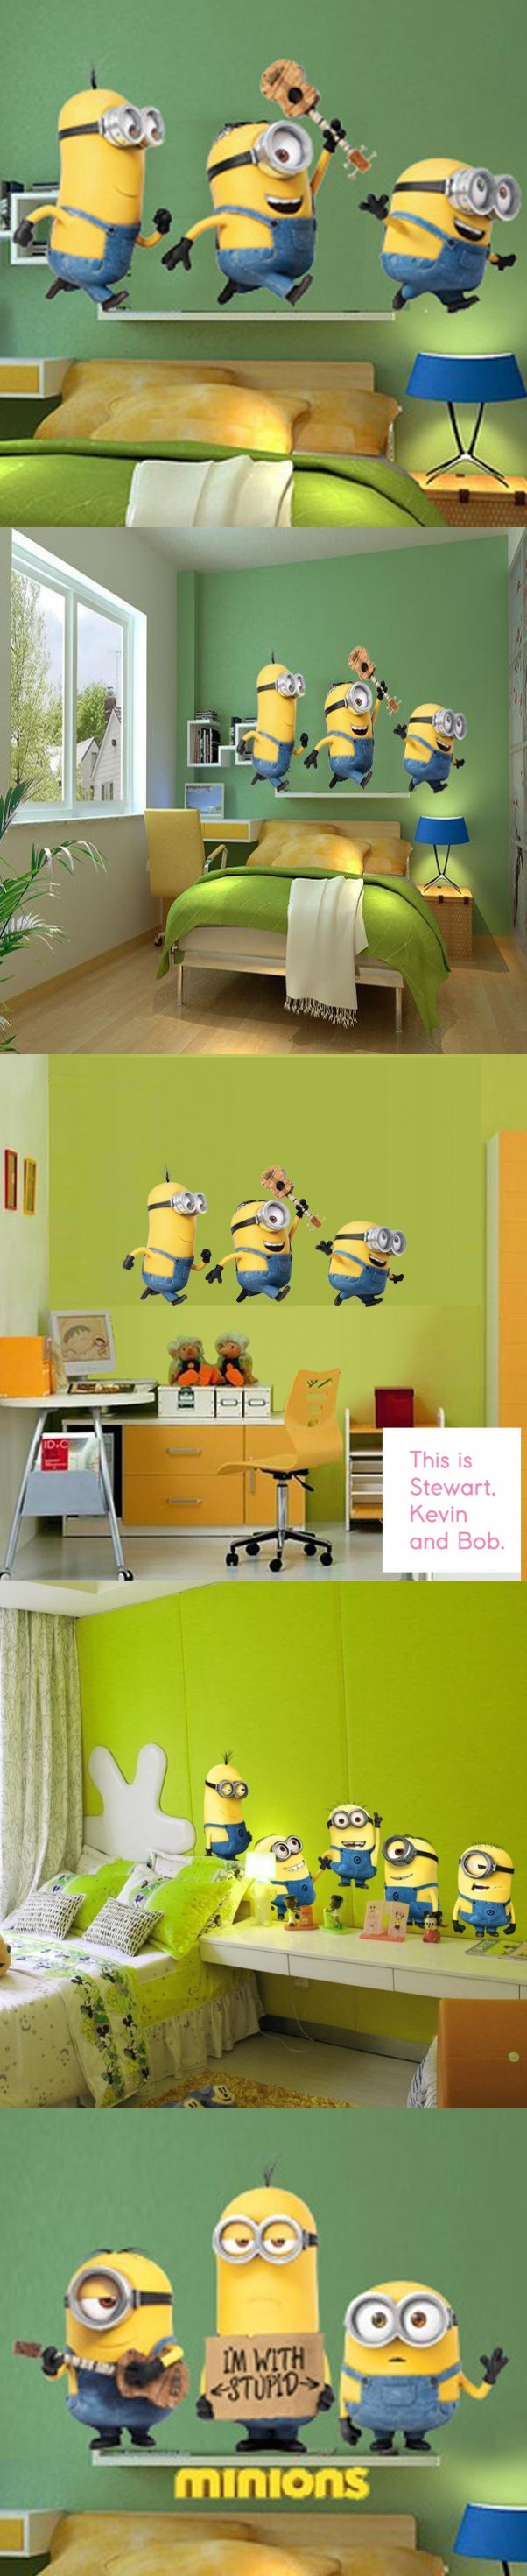 Cute Wall Stickers Home Decor Removable Minion Wallpaper For Kids Room Stikers Decoration PVC Poster